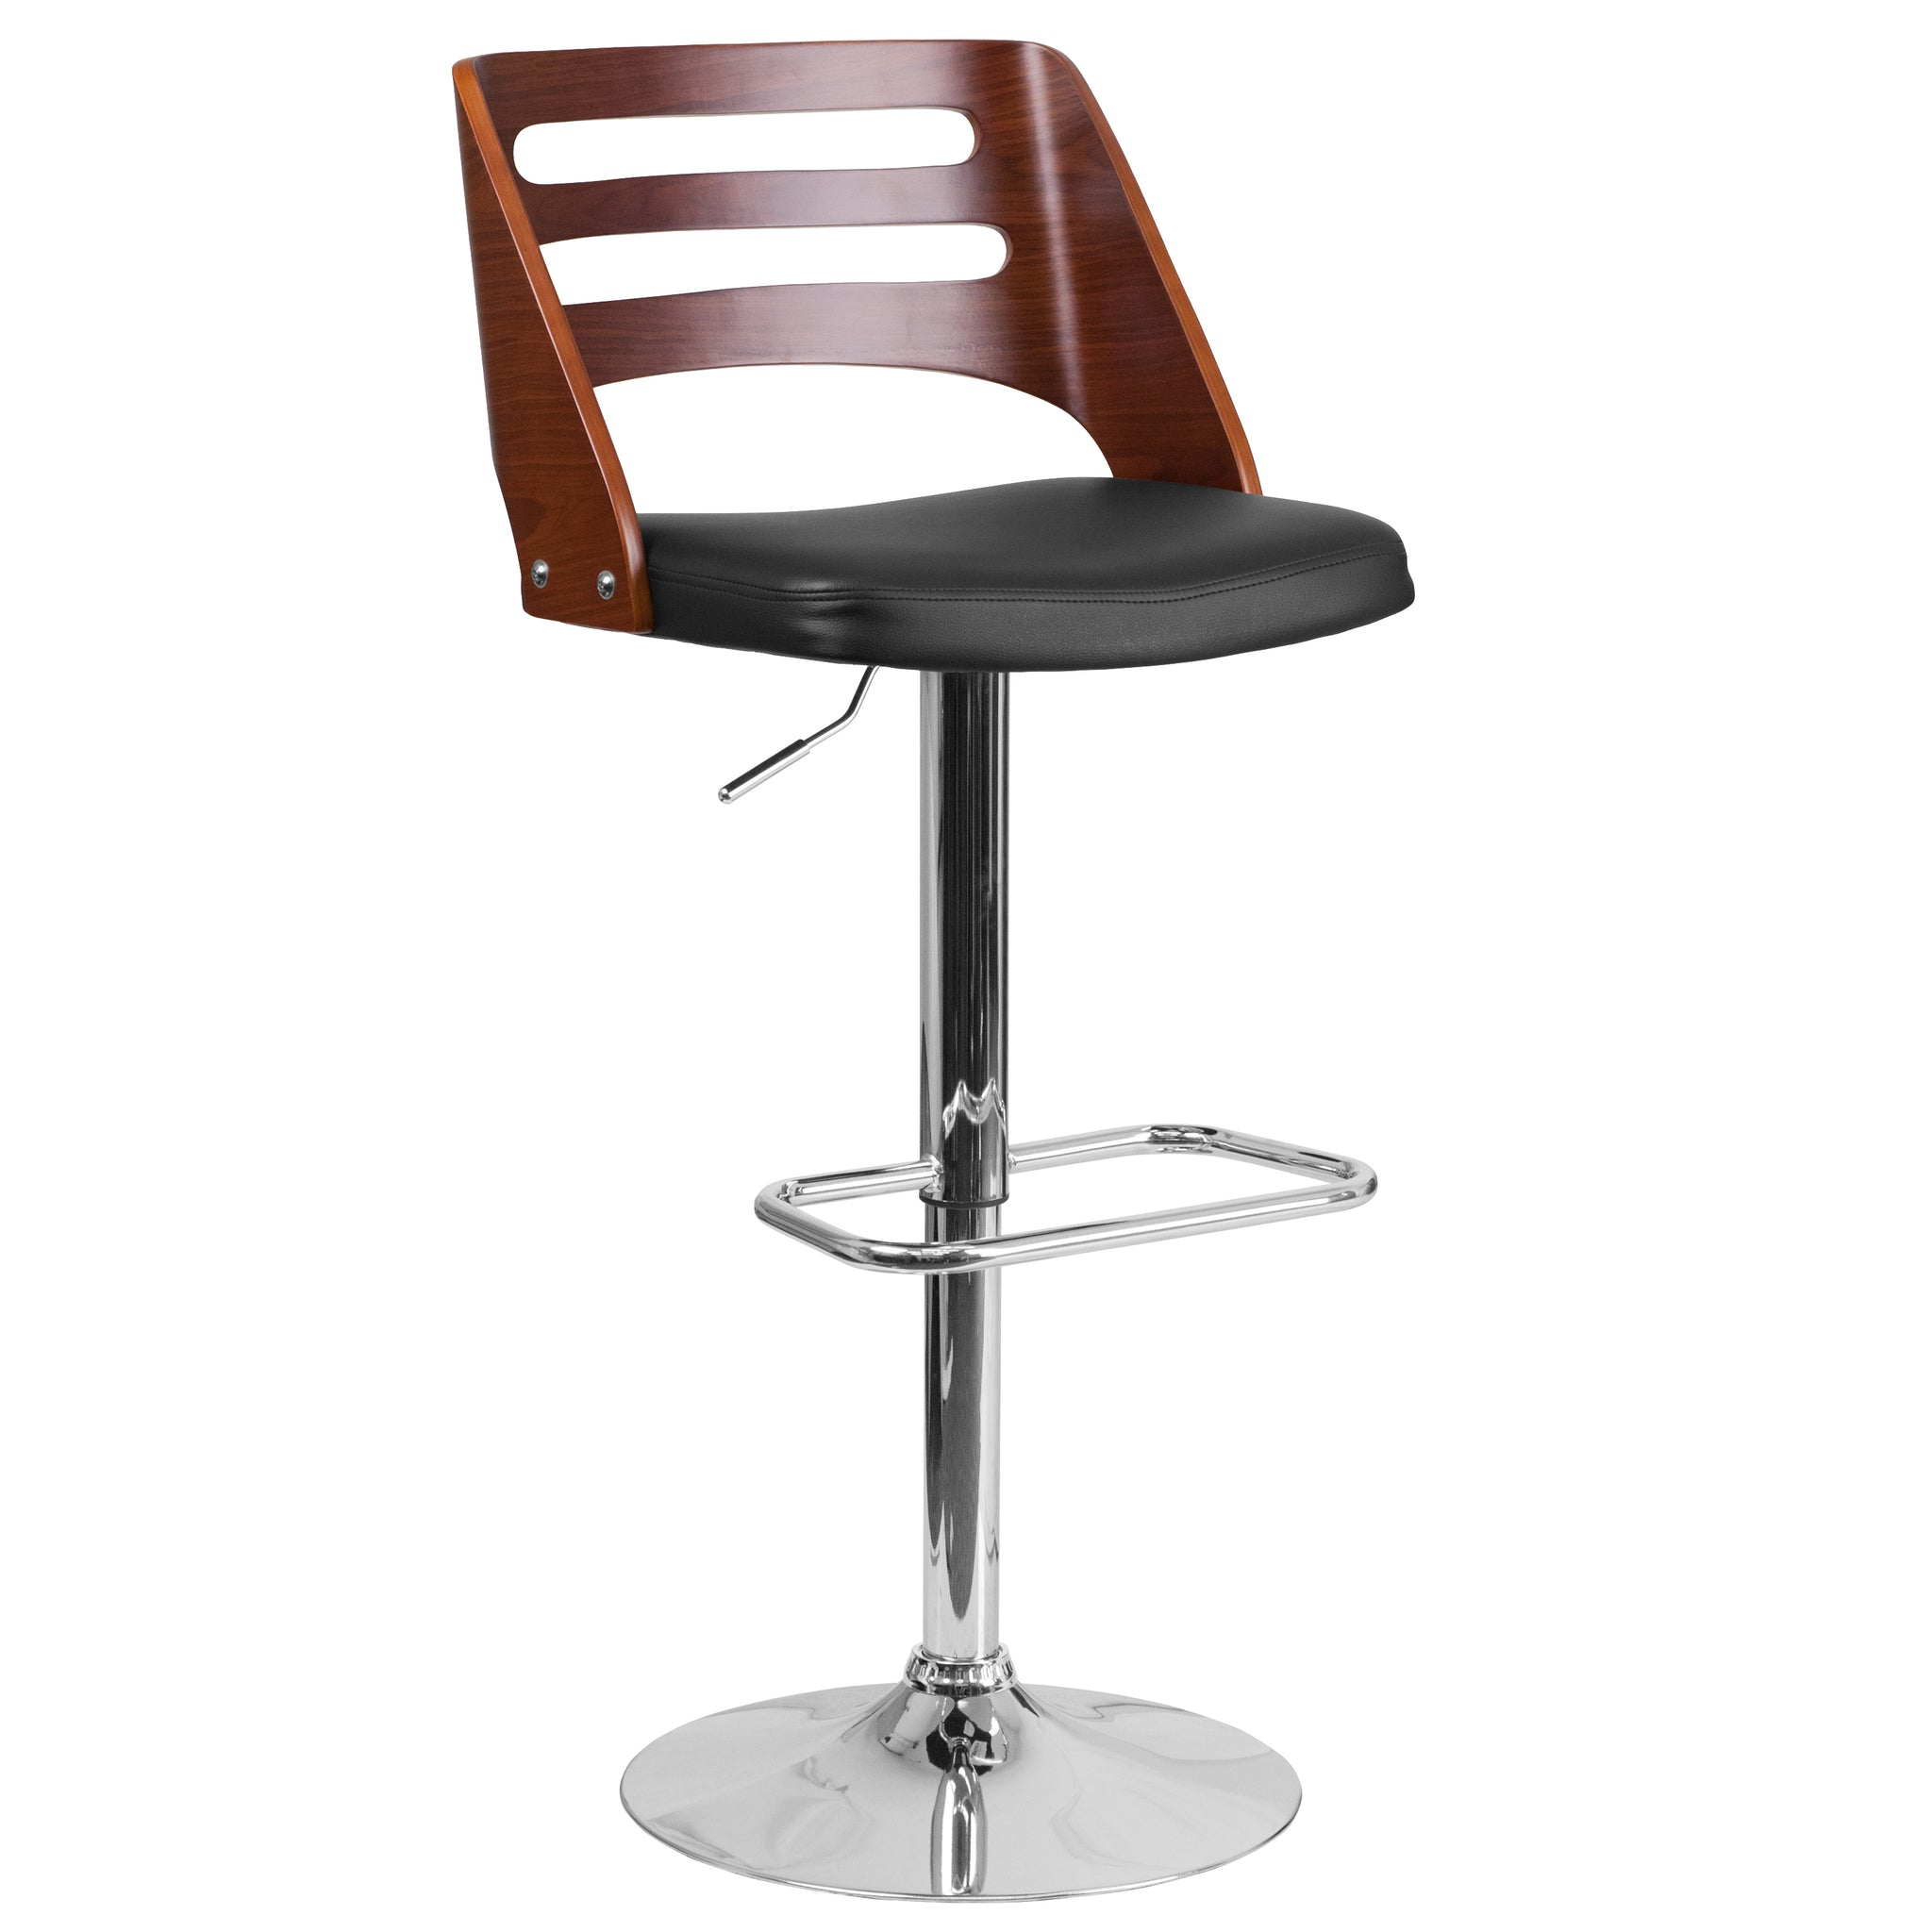 Bentwood Adjustable Height Barstool with Vinyl Seat and Cutout Back: Walnut